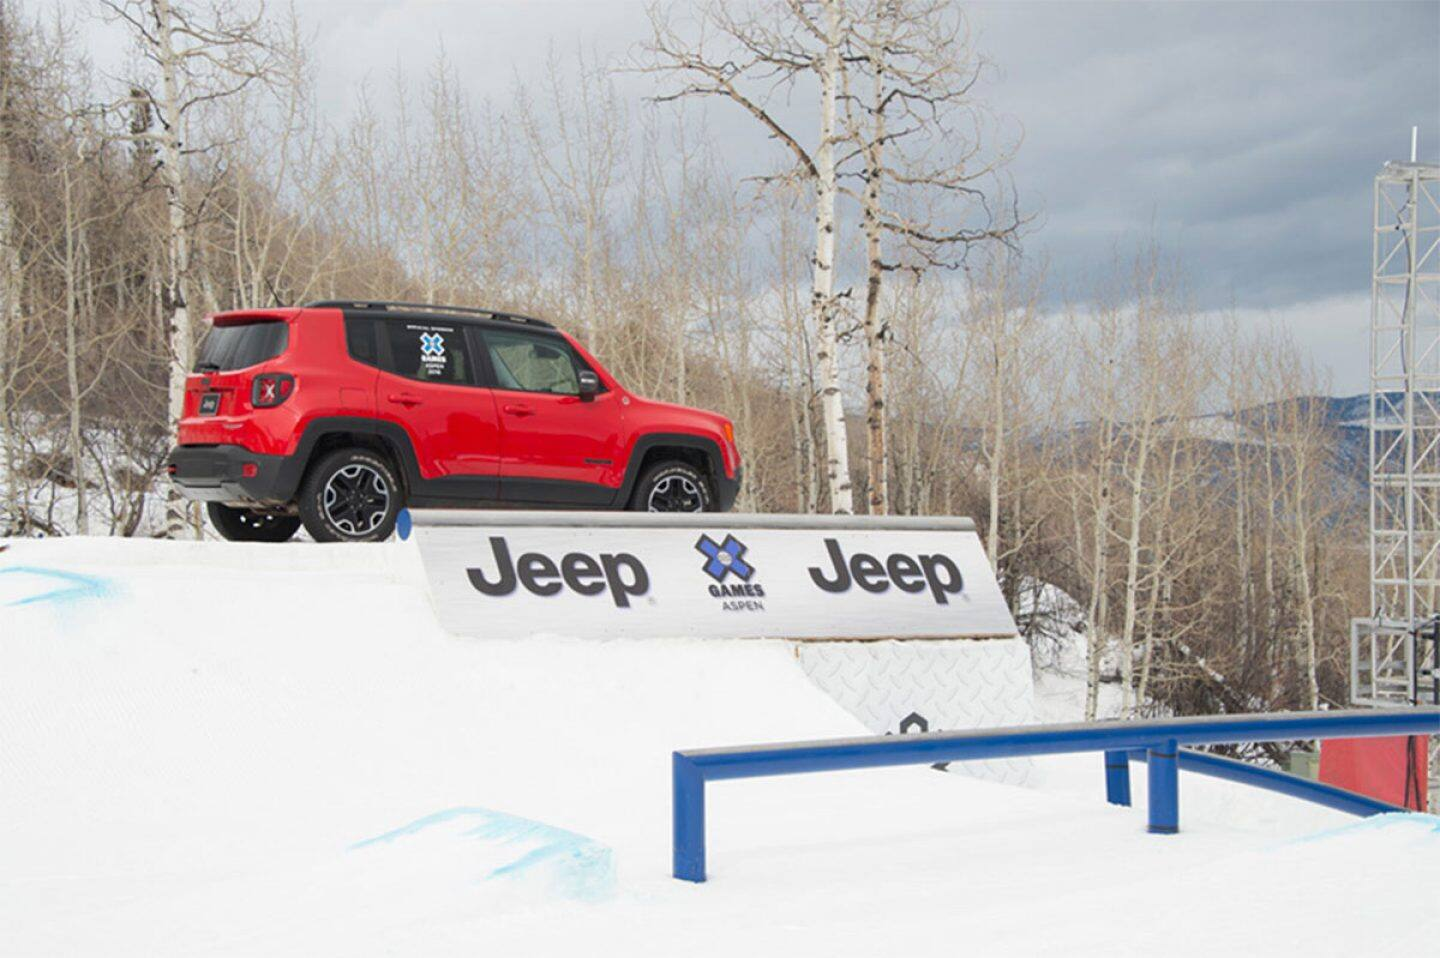 Display A red Jeep vehicle on display at the X Games